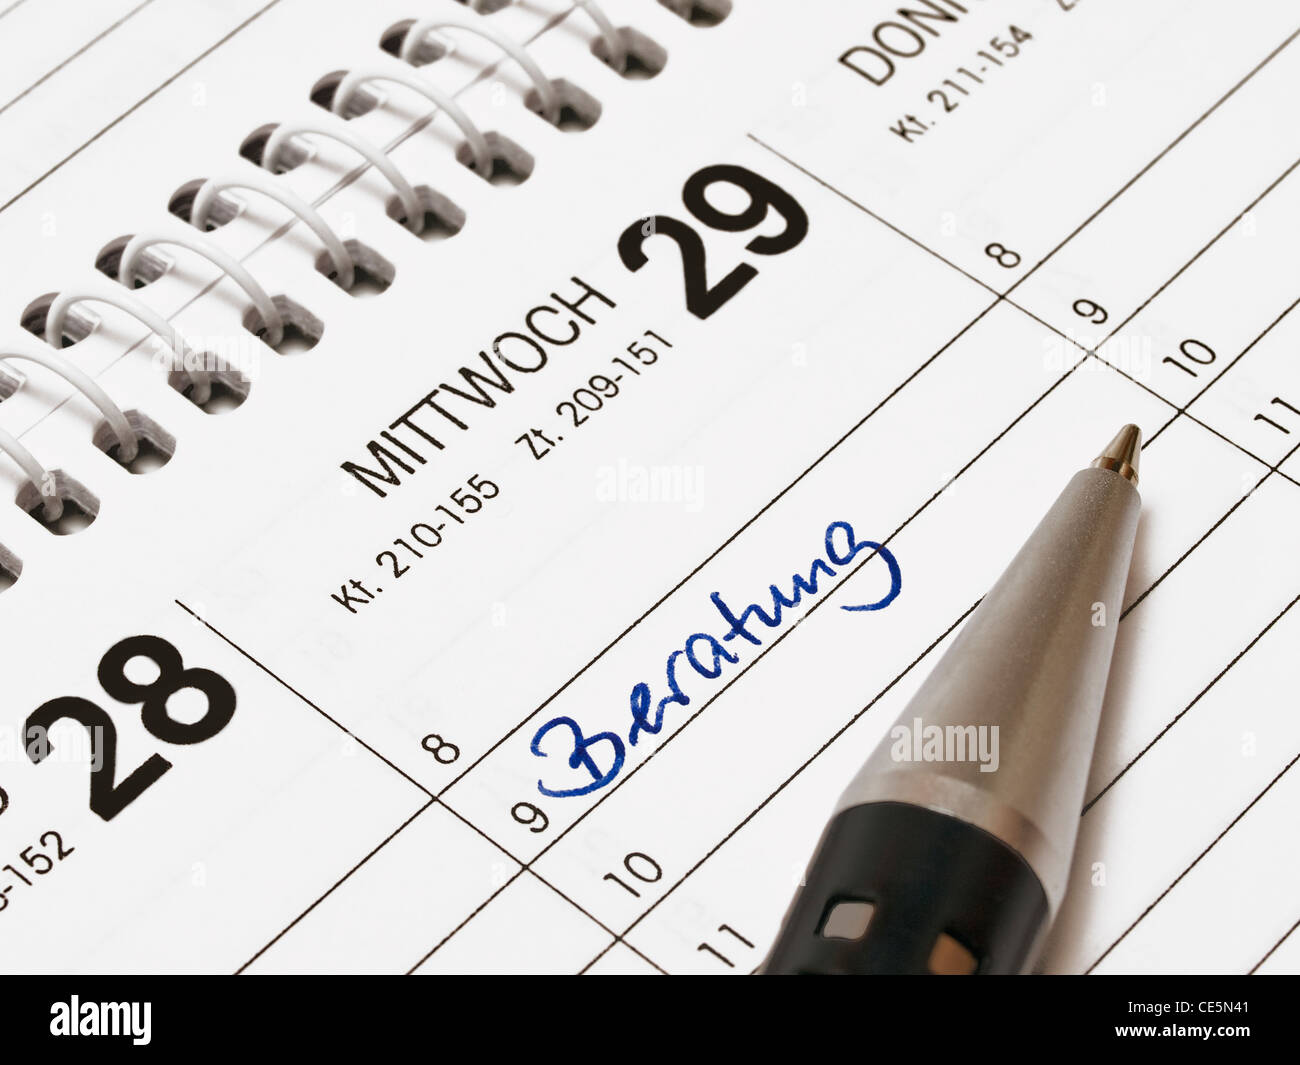 A calendar shows Wednesday, the 29th of a month. The item meeting is in the calendar written with German words. - Stock Image